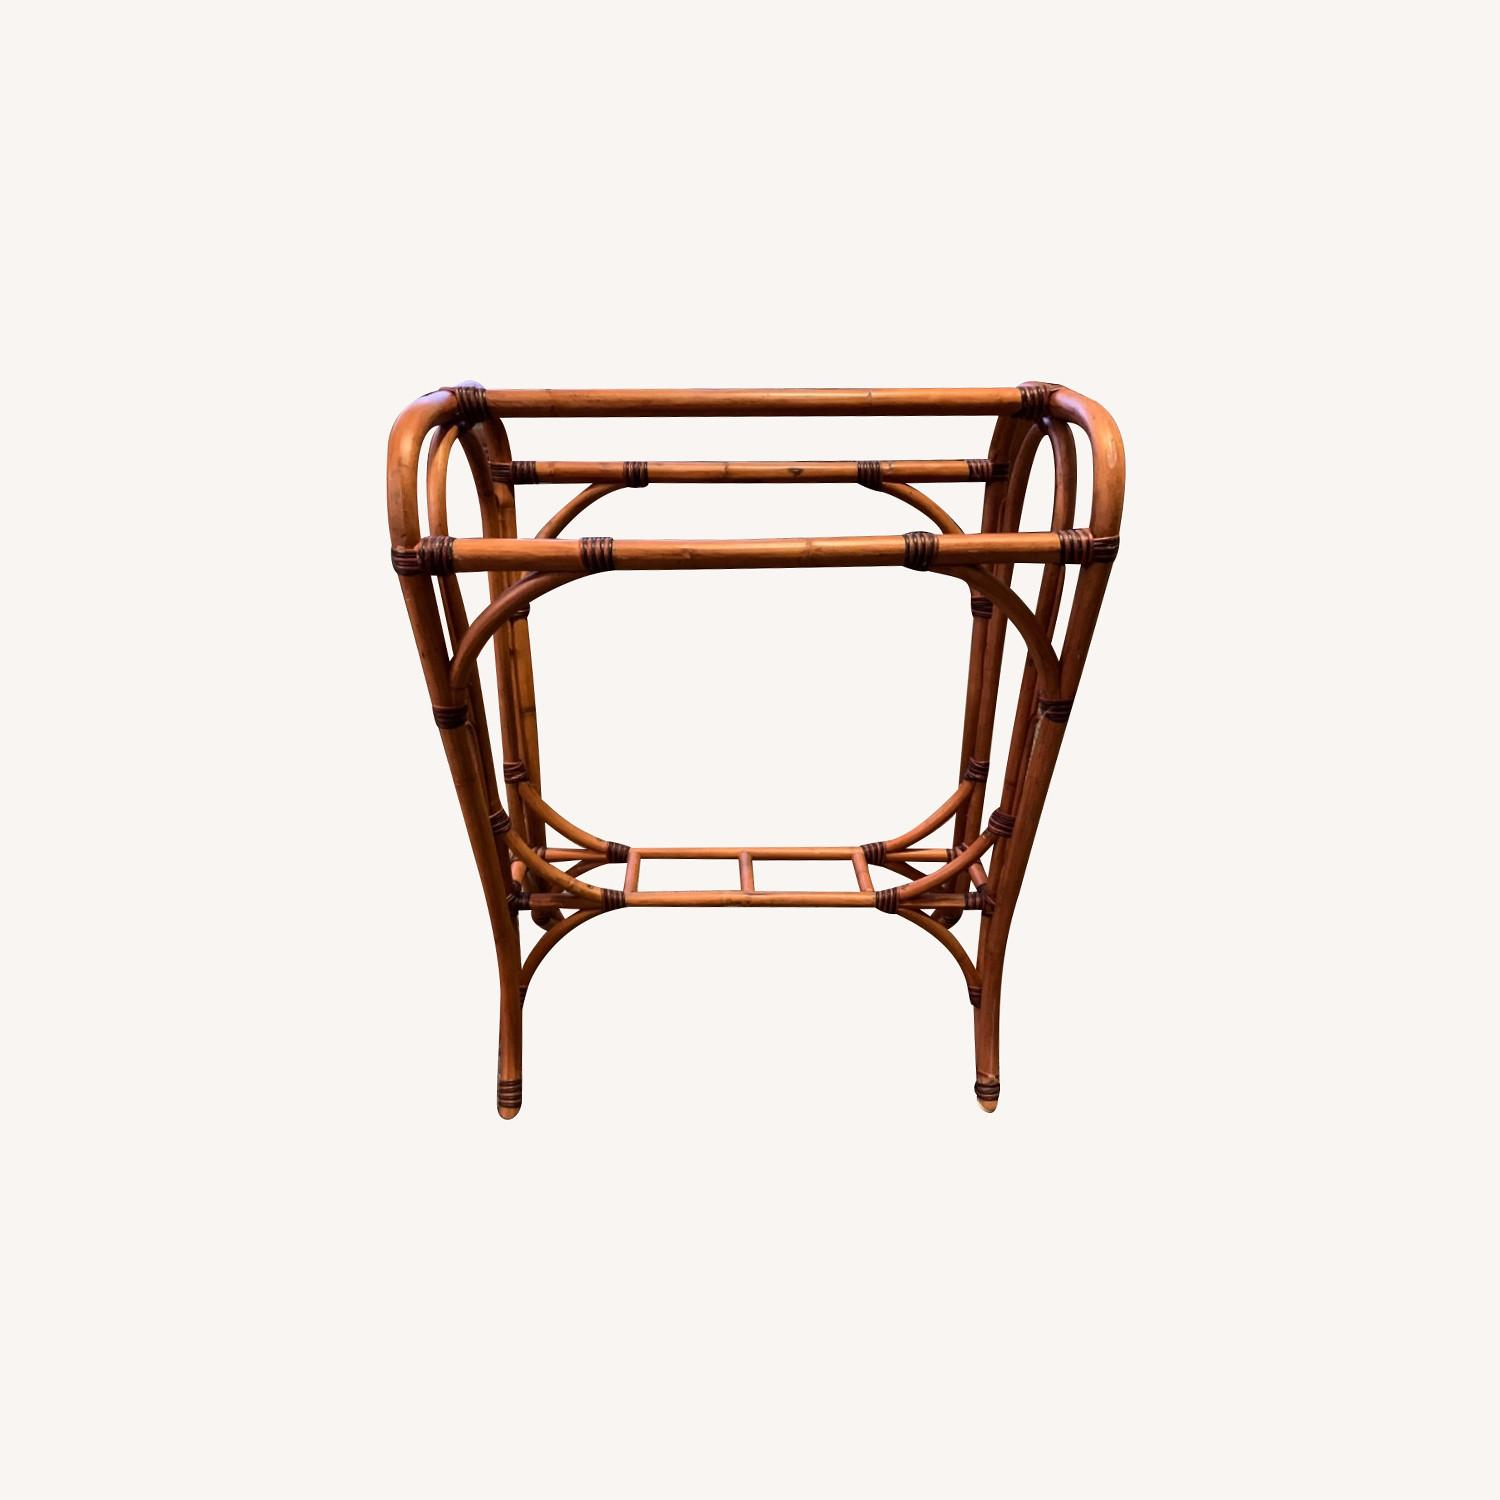 Rattan Towel Rack In The Style Of Franco Albini. - image-0